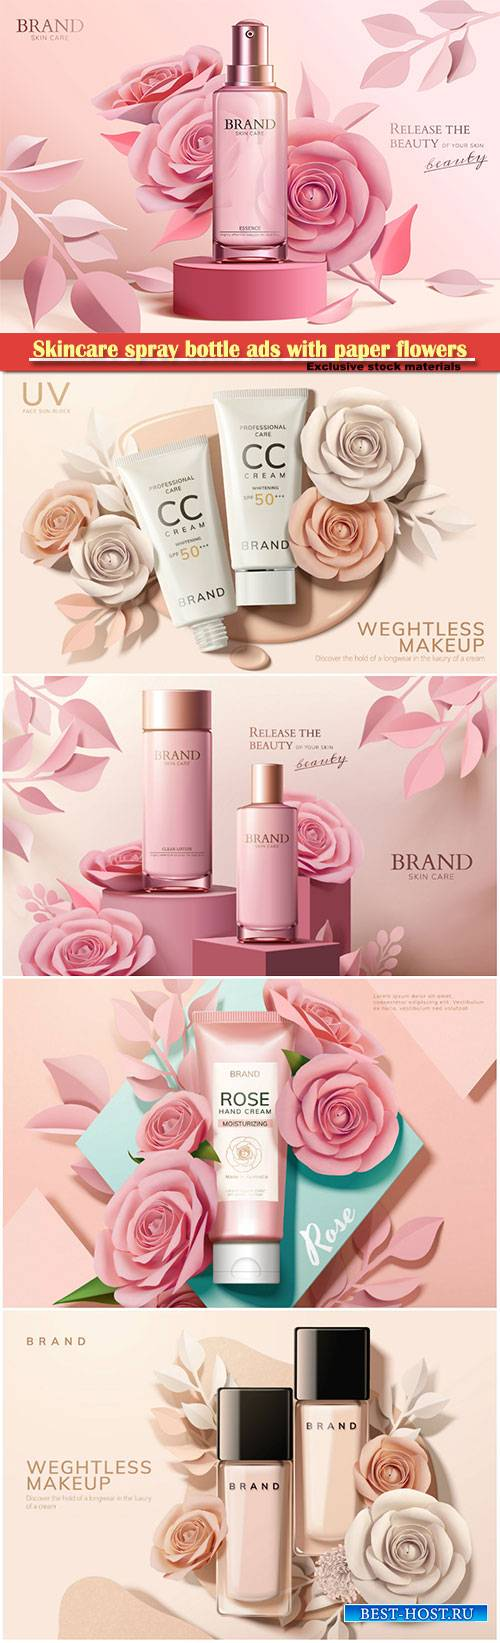 Skincare spray bottle ads with paper flowers, 3d illustration